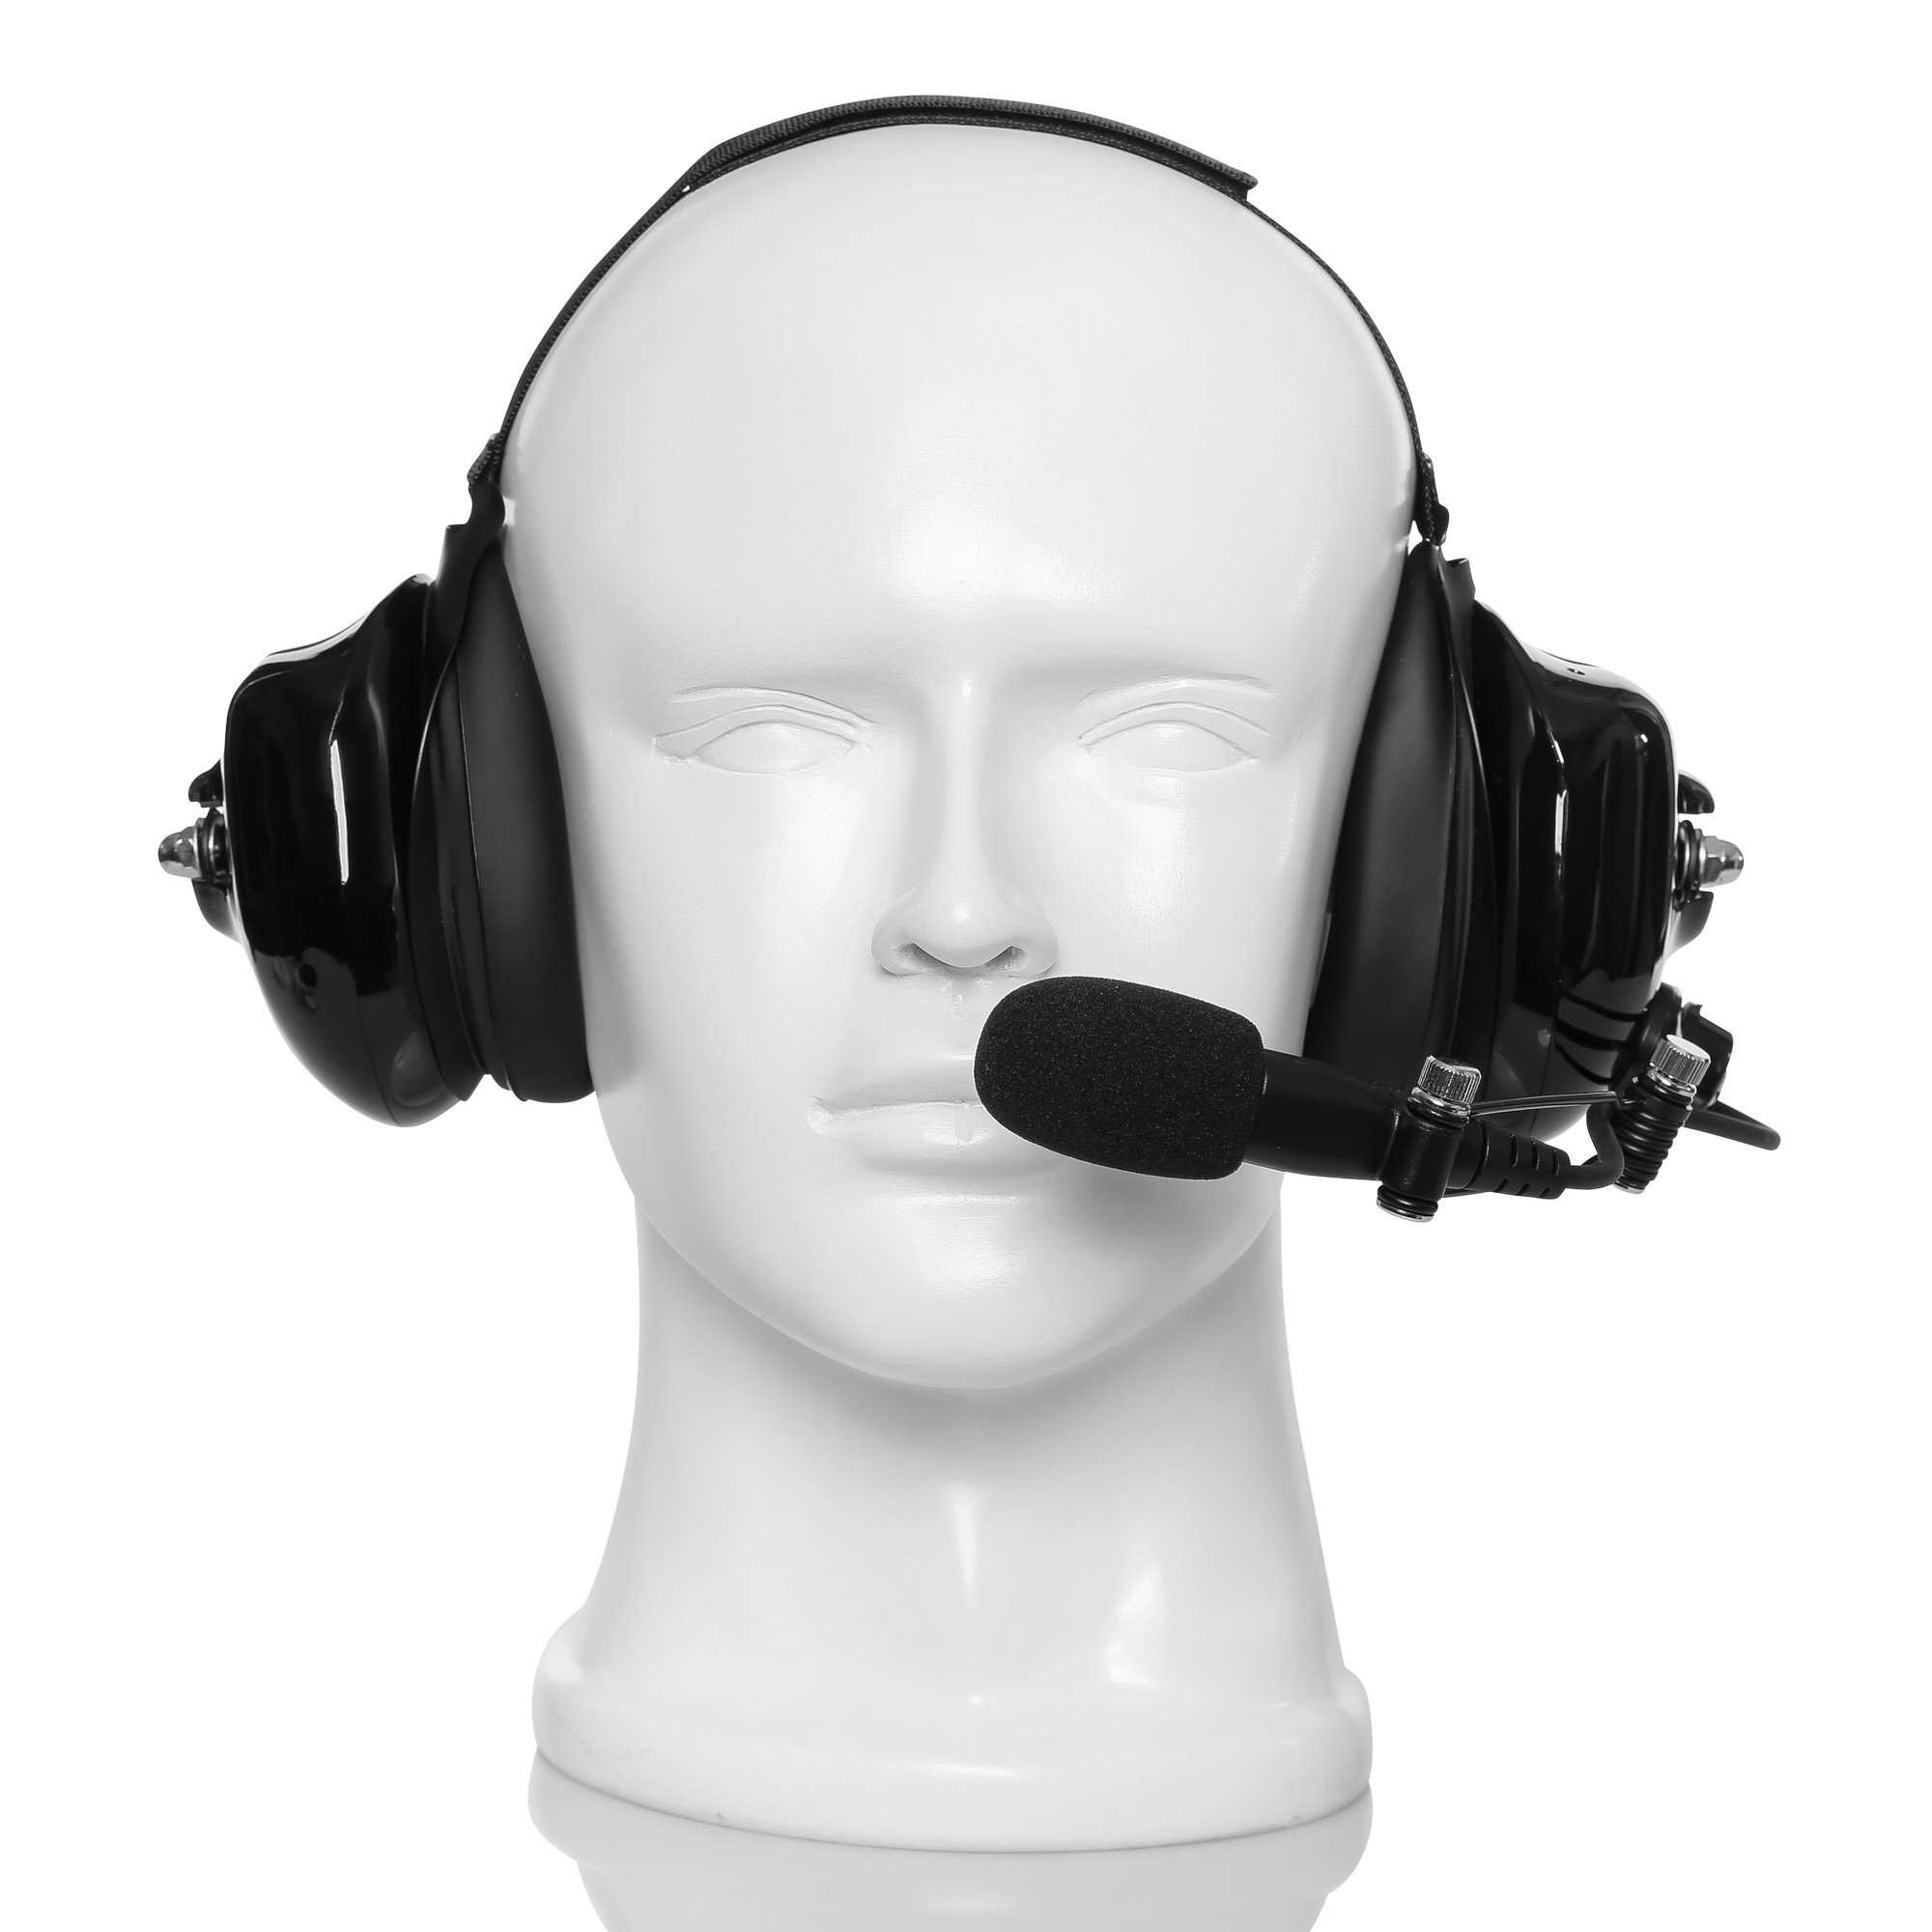 Maxtop AHDH0032-BK-M9 Two Way Radio Noise Cancelling Headset for Motorola MTP850 MTP830 XPR-7380 XPR-7550 XPR-7580 by MAXTOP (Image #2)